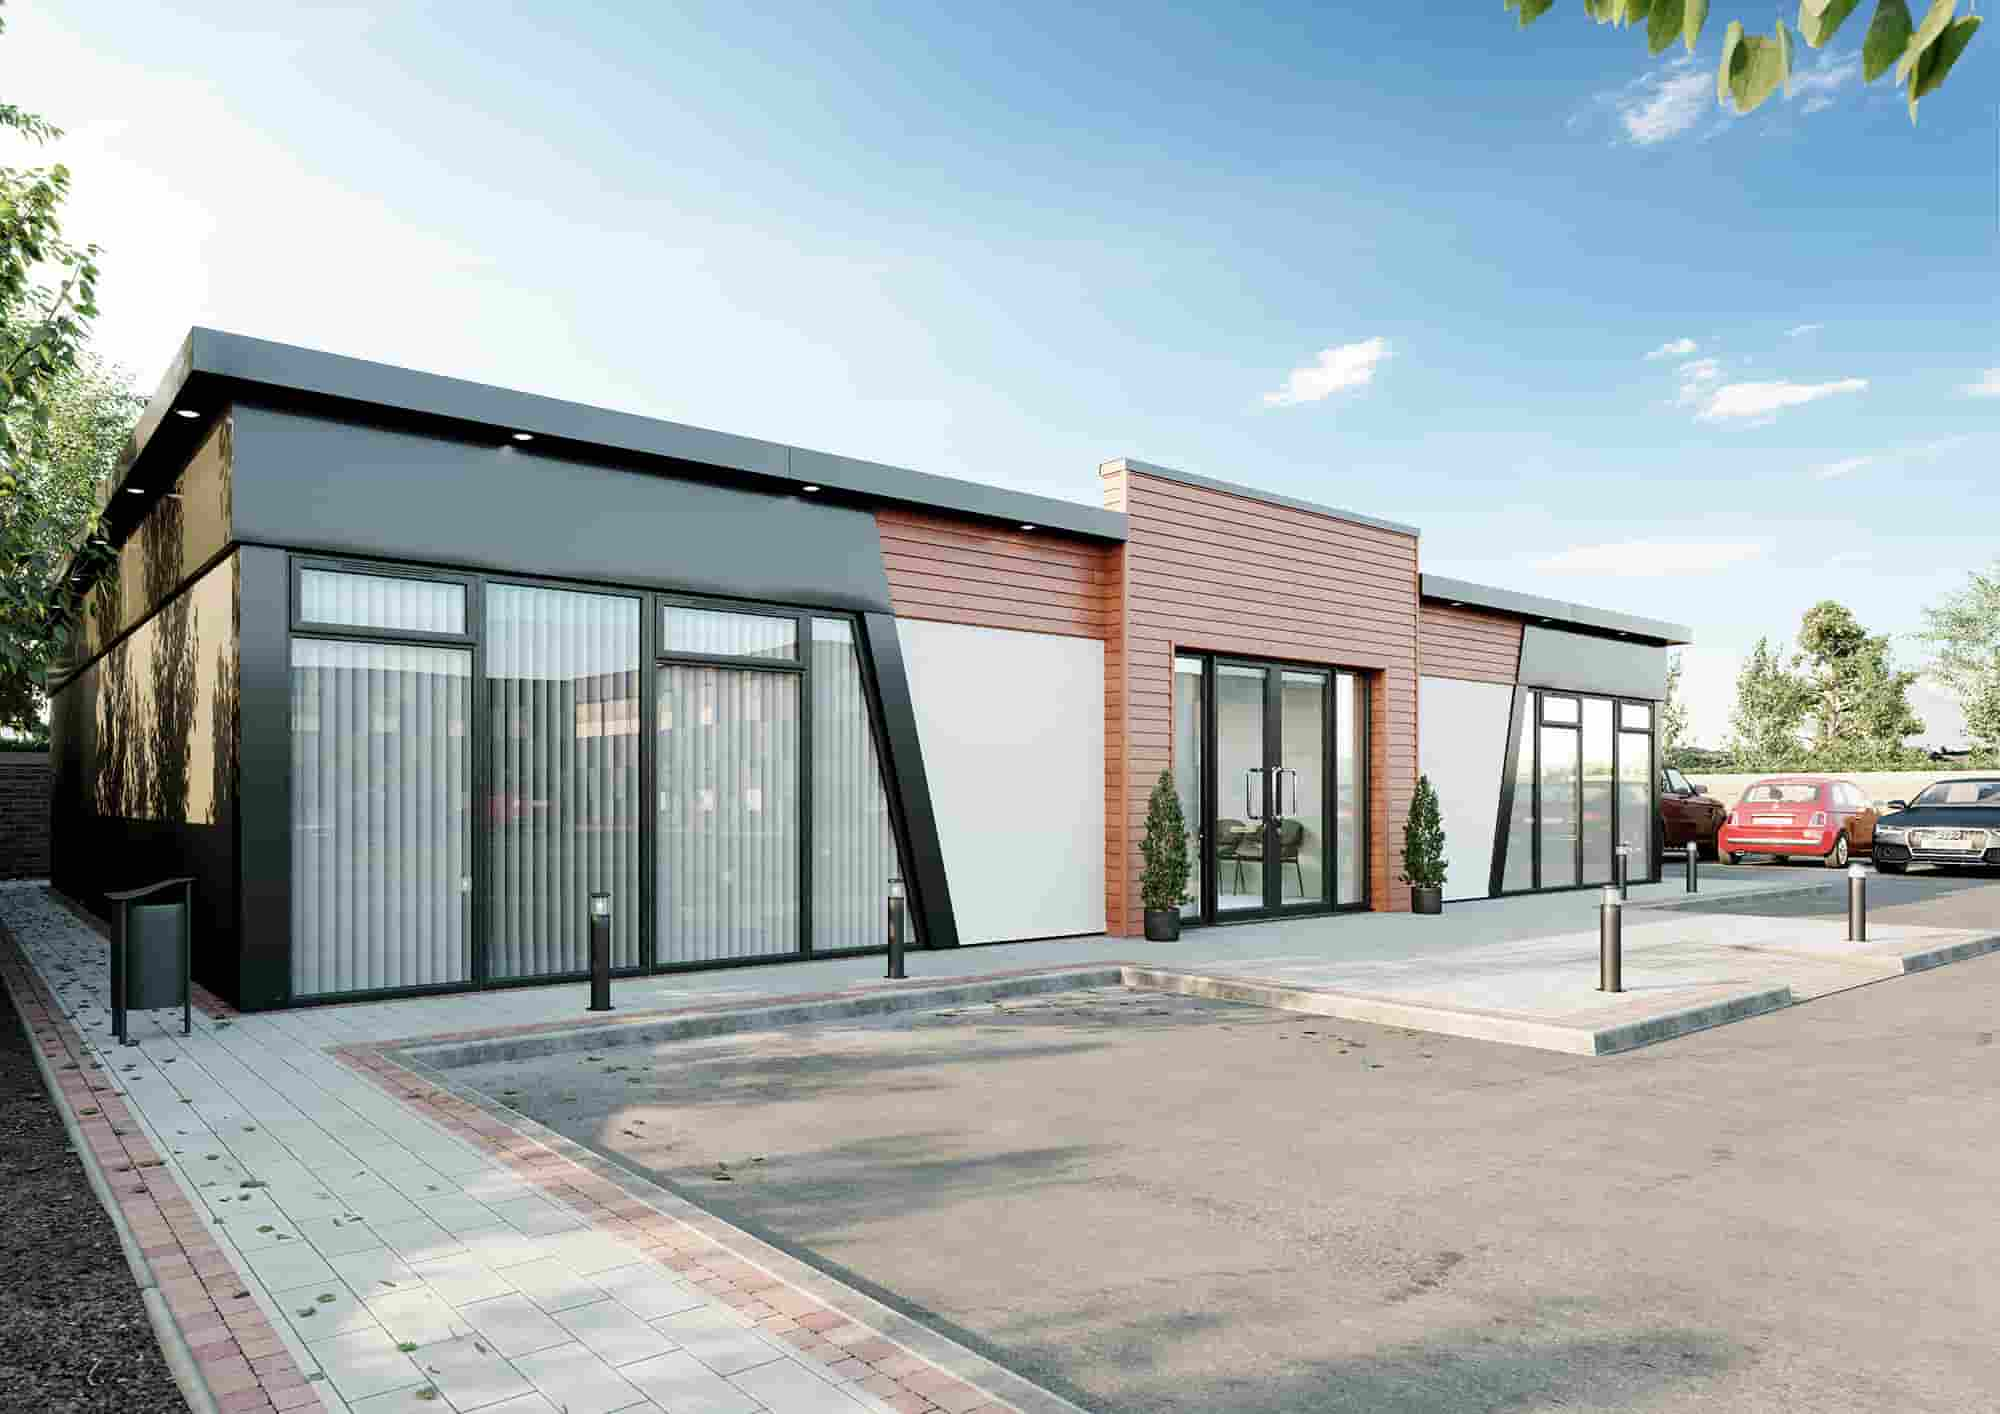 Is a Modular Building the Right Option for Your Business?